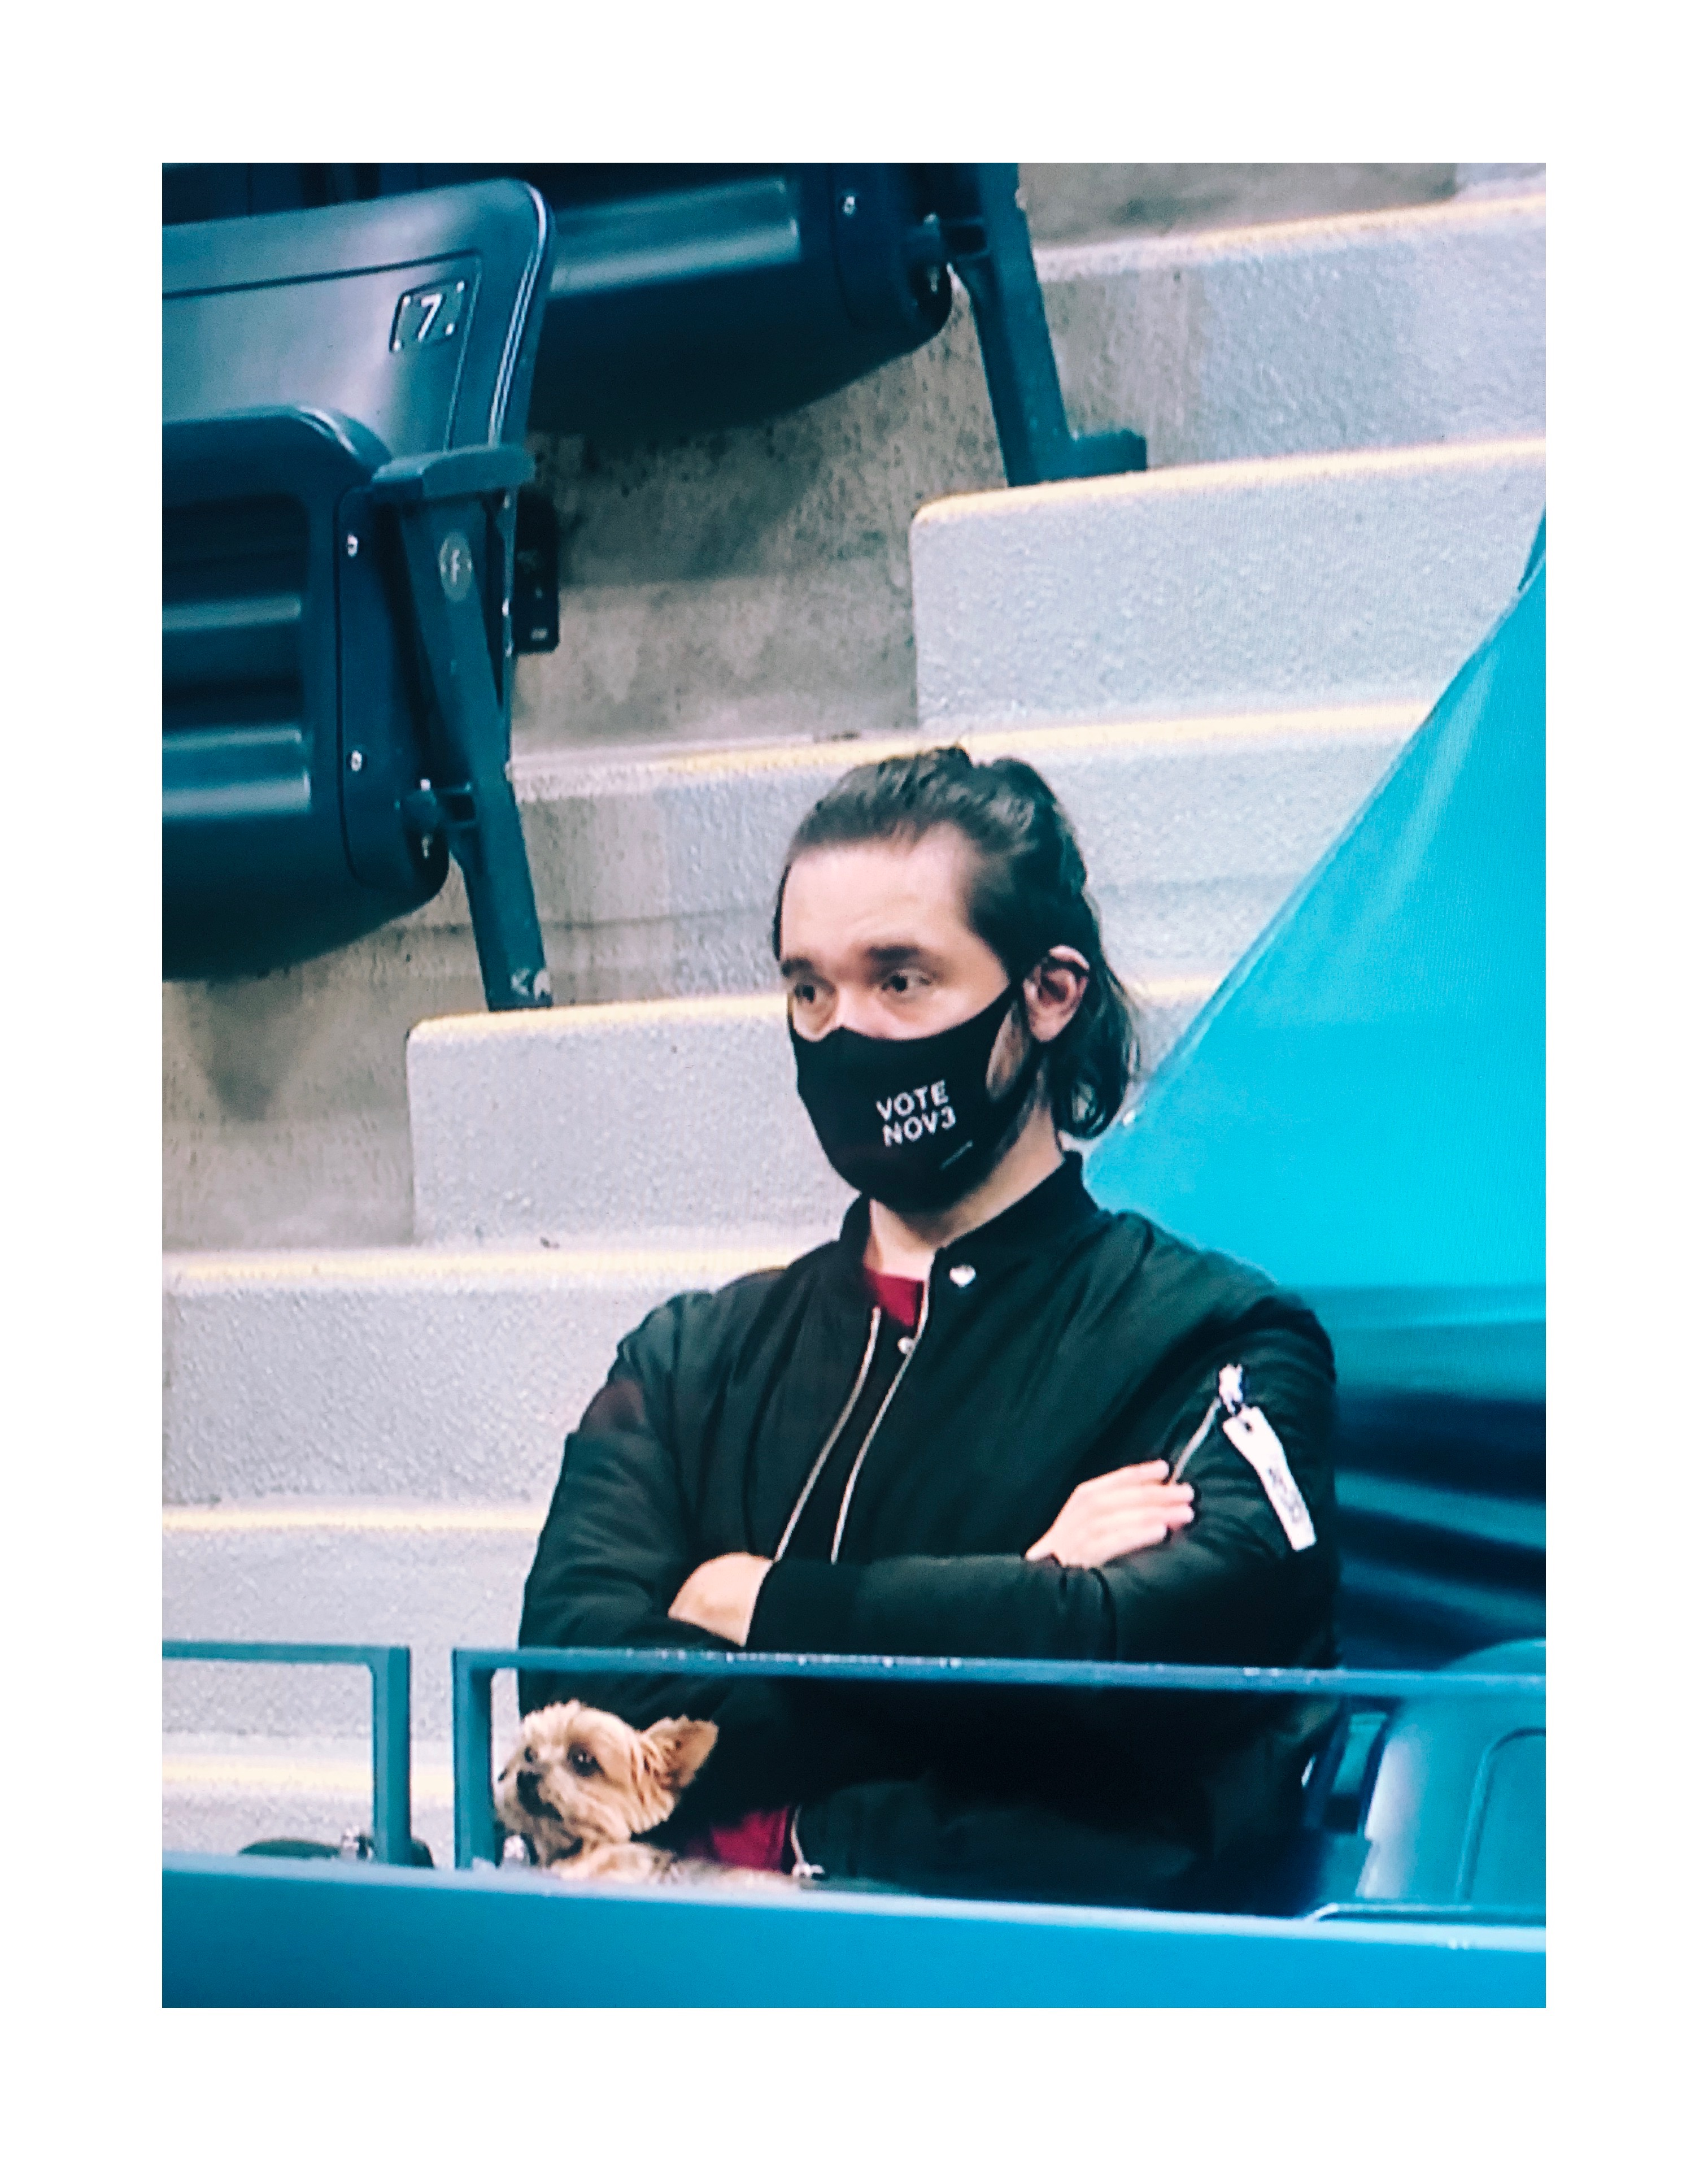 Atoms board member Alexis Ohanian wears the VOTE NOV 3 mask at the US Open on September 3.